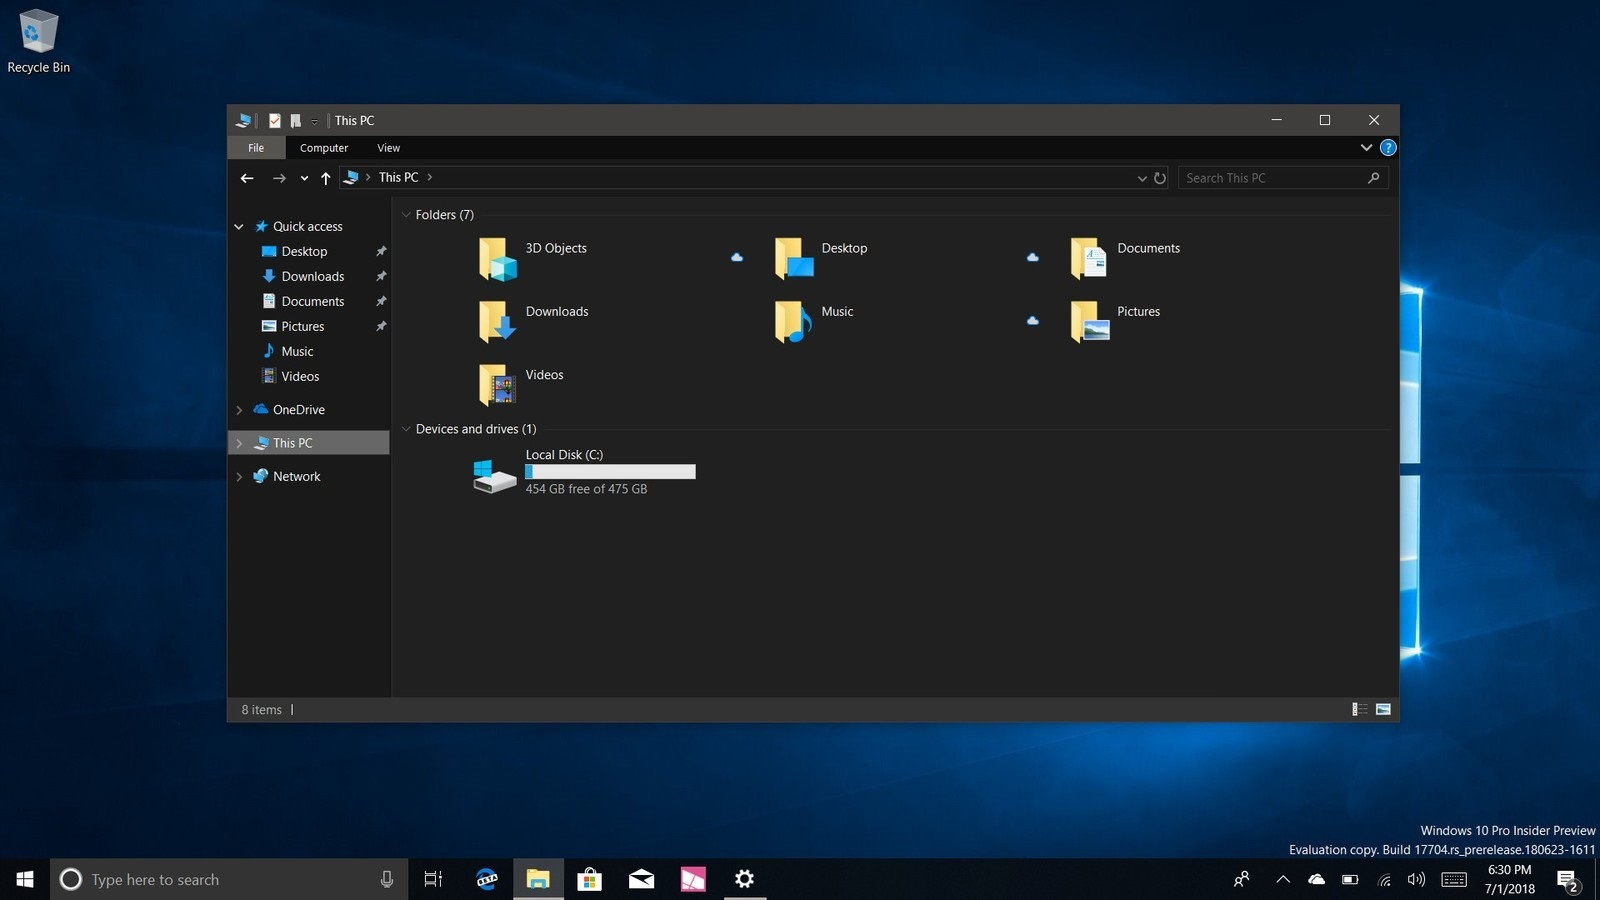 Windows 10 Dec 2018 free download full version